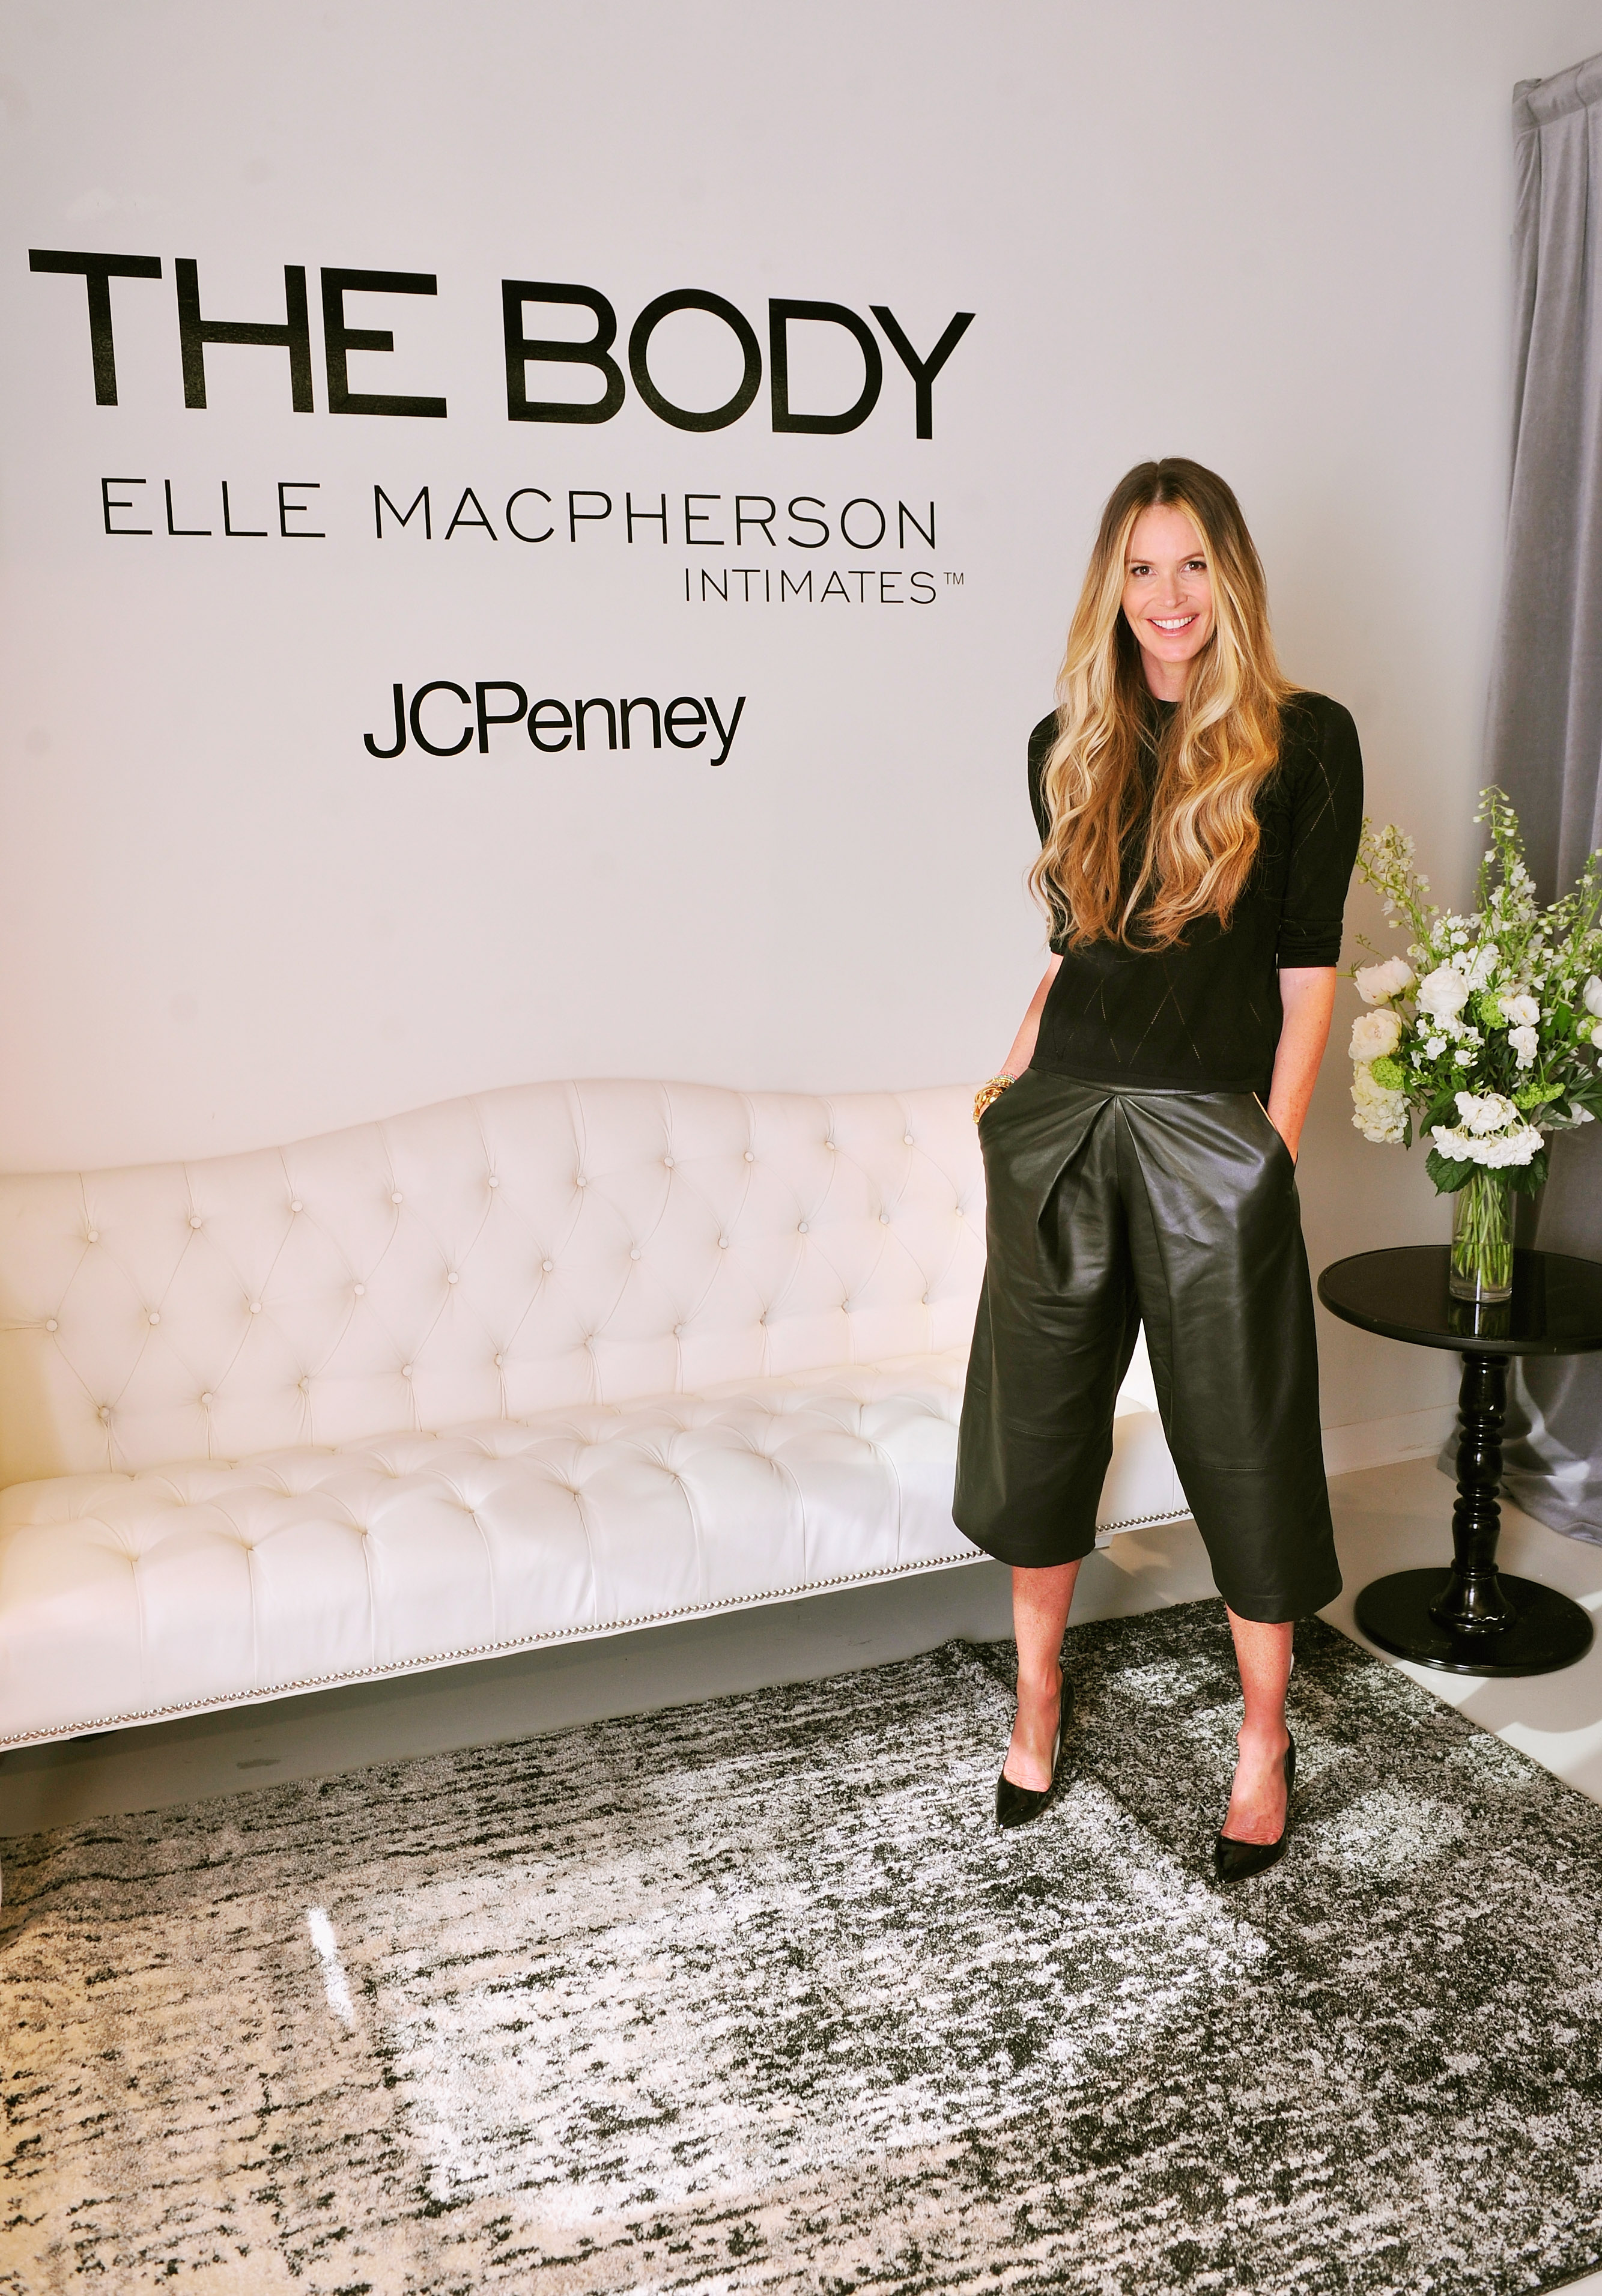 The Body Is Back: Elle Macpherson's New Lingerie Line for JCPenney